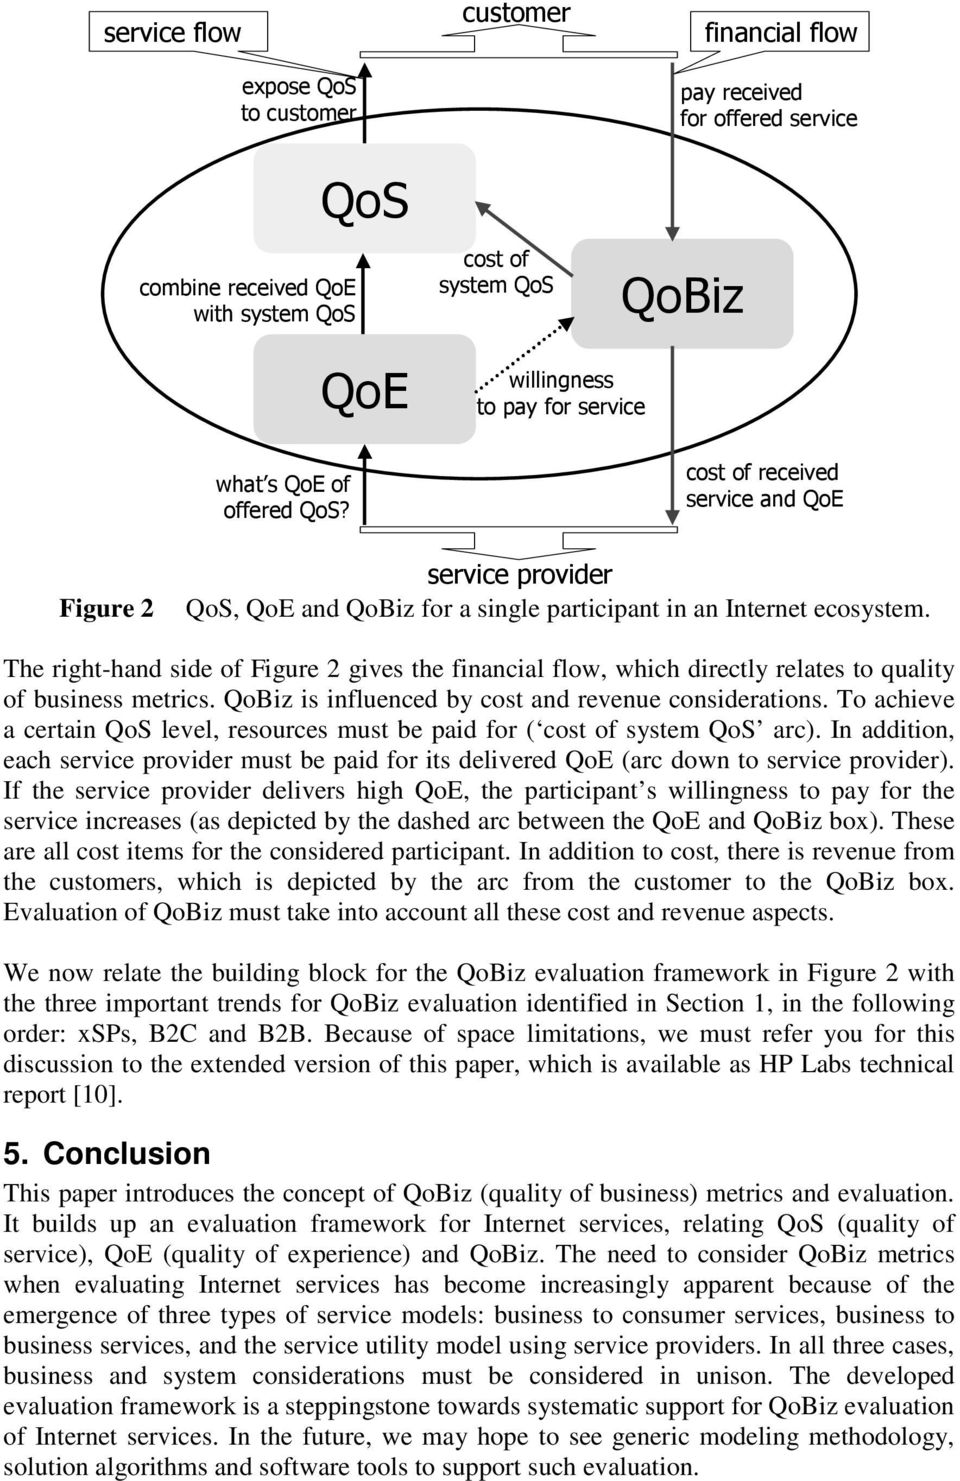 The right-hand side of Figure 2 gives the financial flow, which directly relates to quality of business metrics. QoBiz is influenced by cost and revenue considerations.